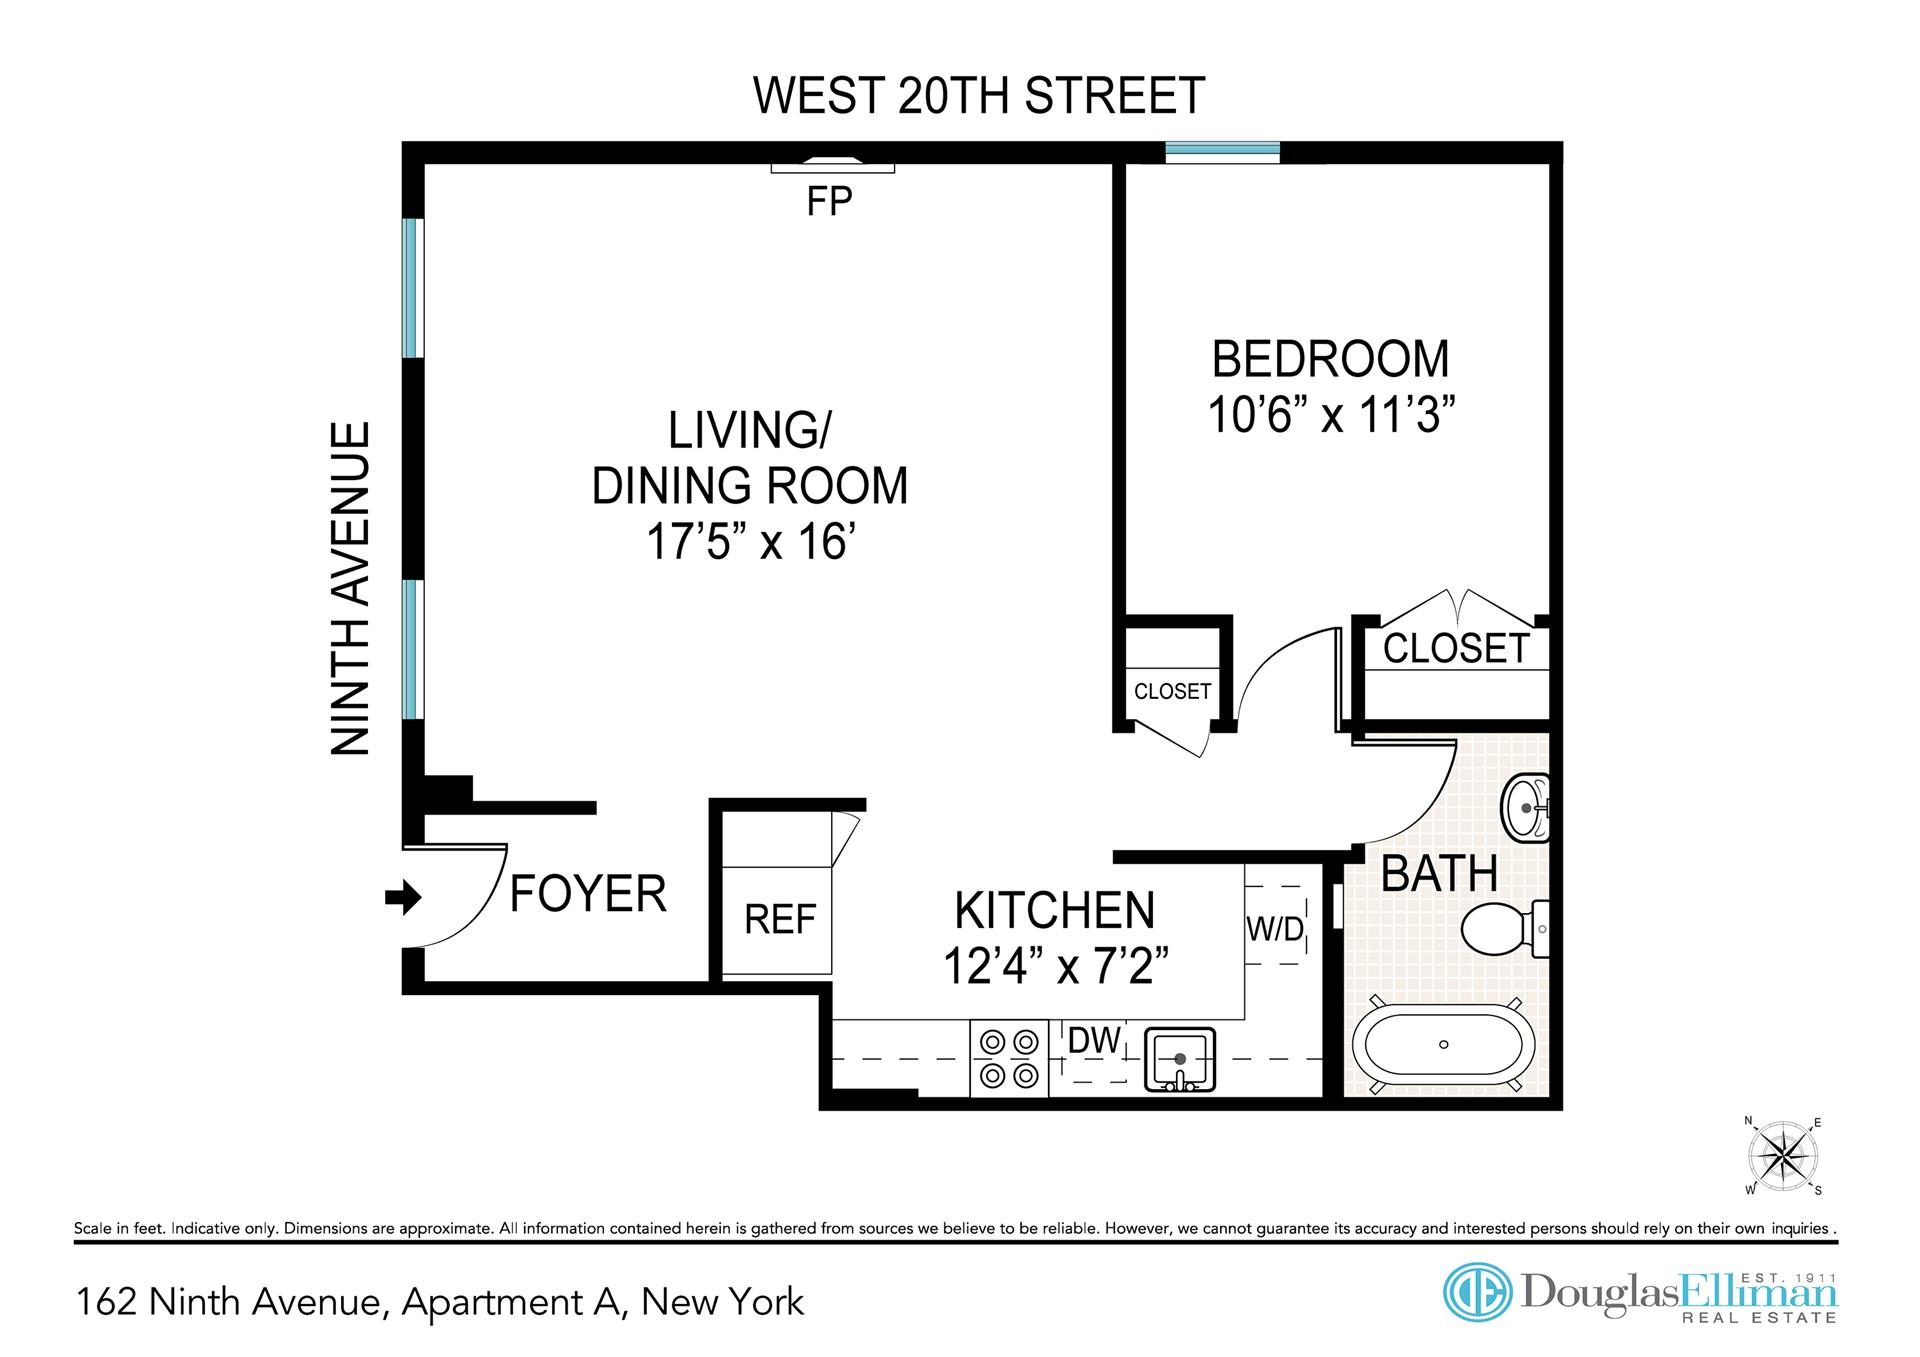 Floor plan of 162 Ninth Avenue, A - Chelsea, New York